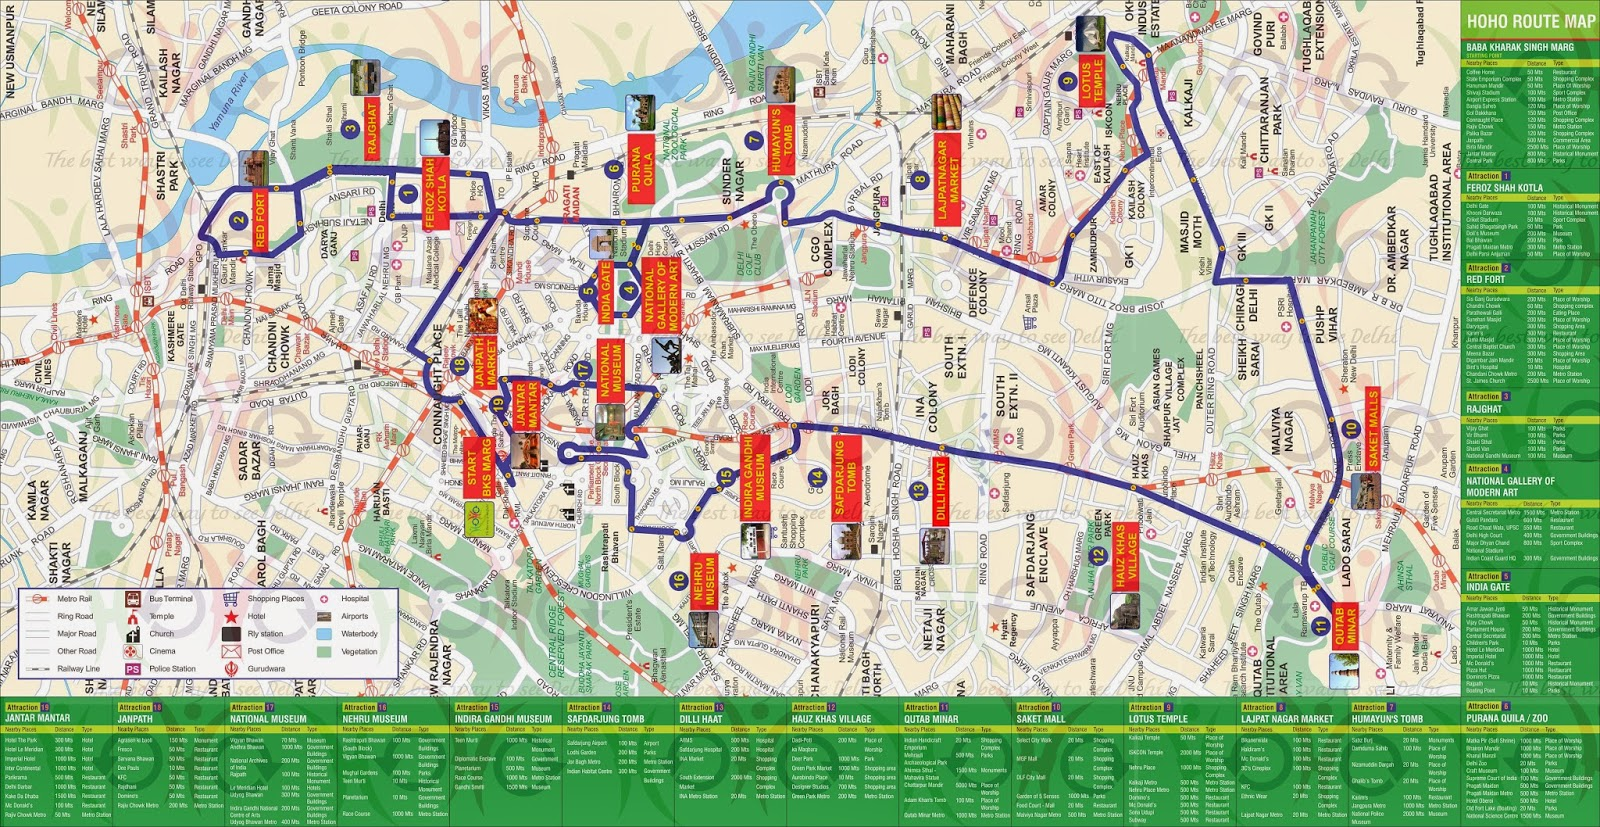 HOHO Old Route Map - 100 + nearby places List